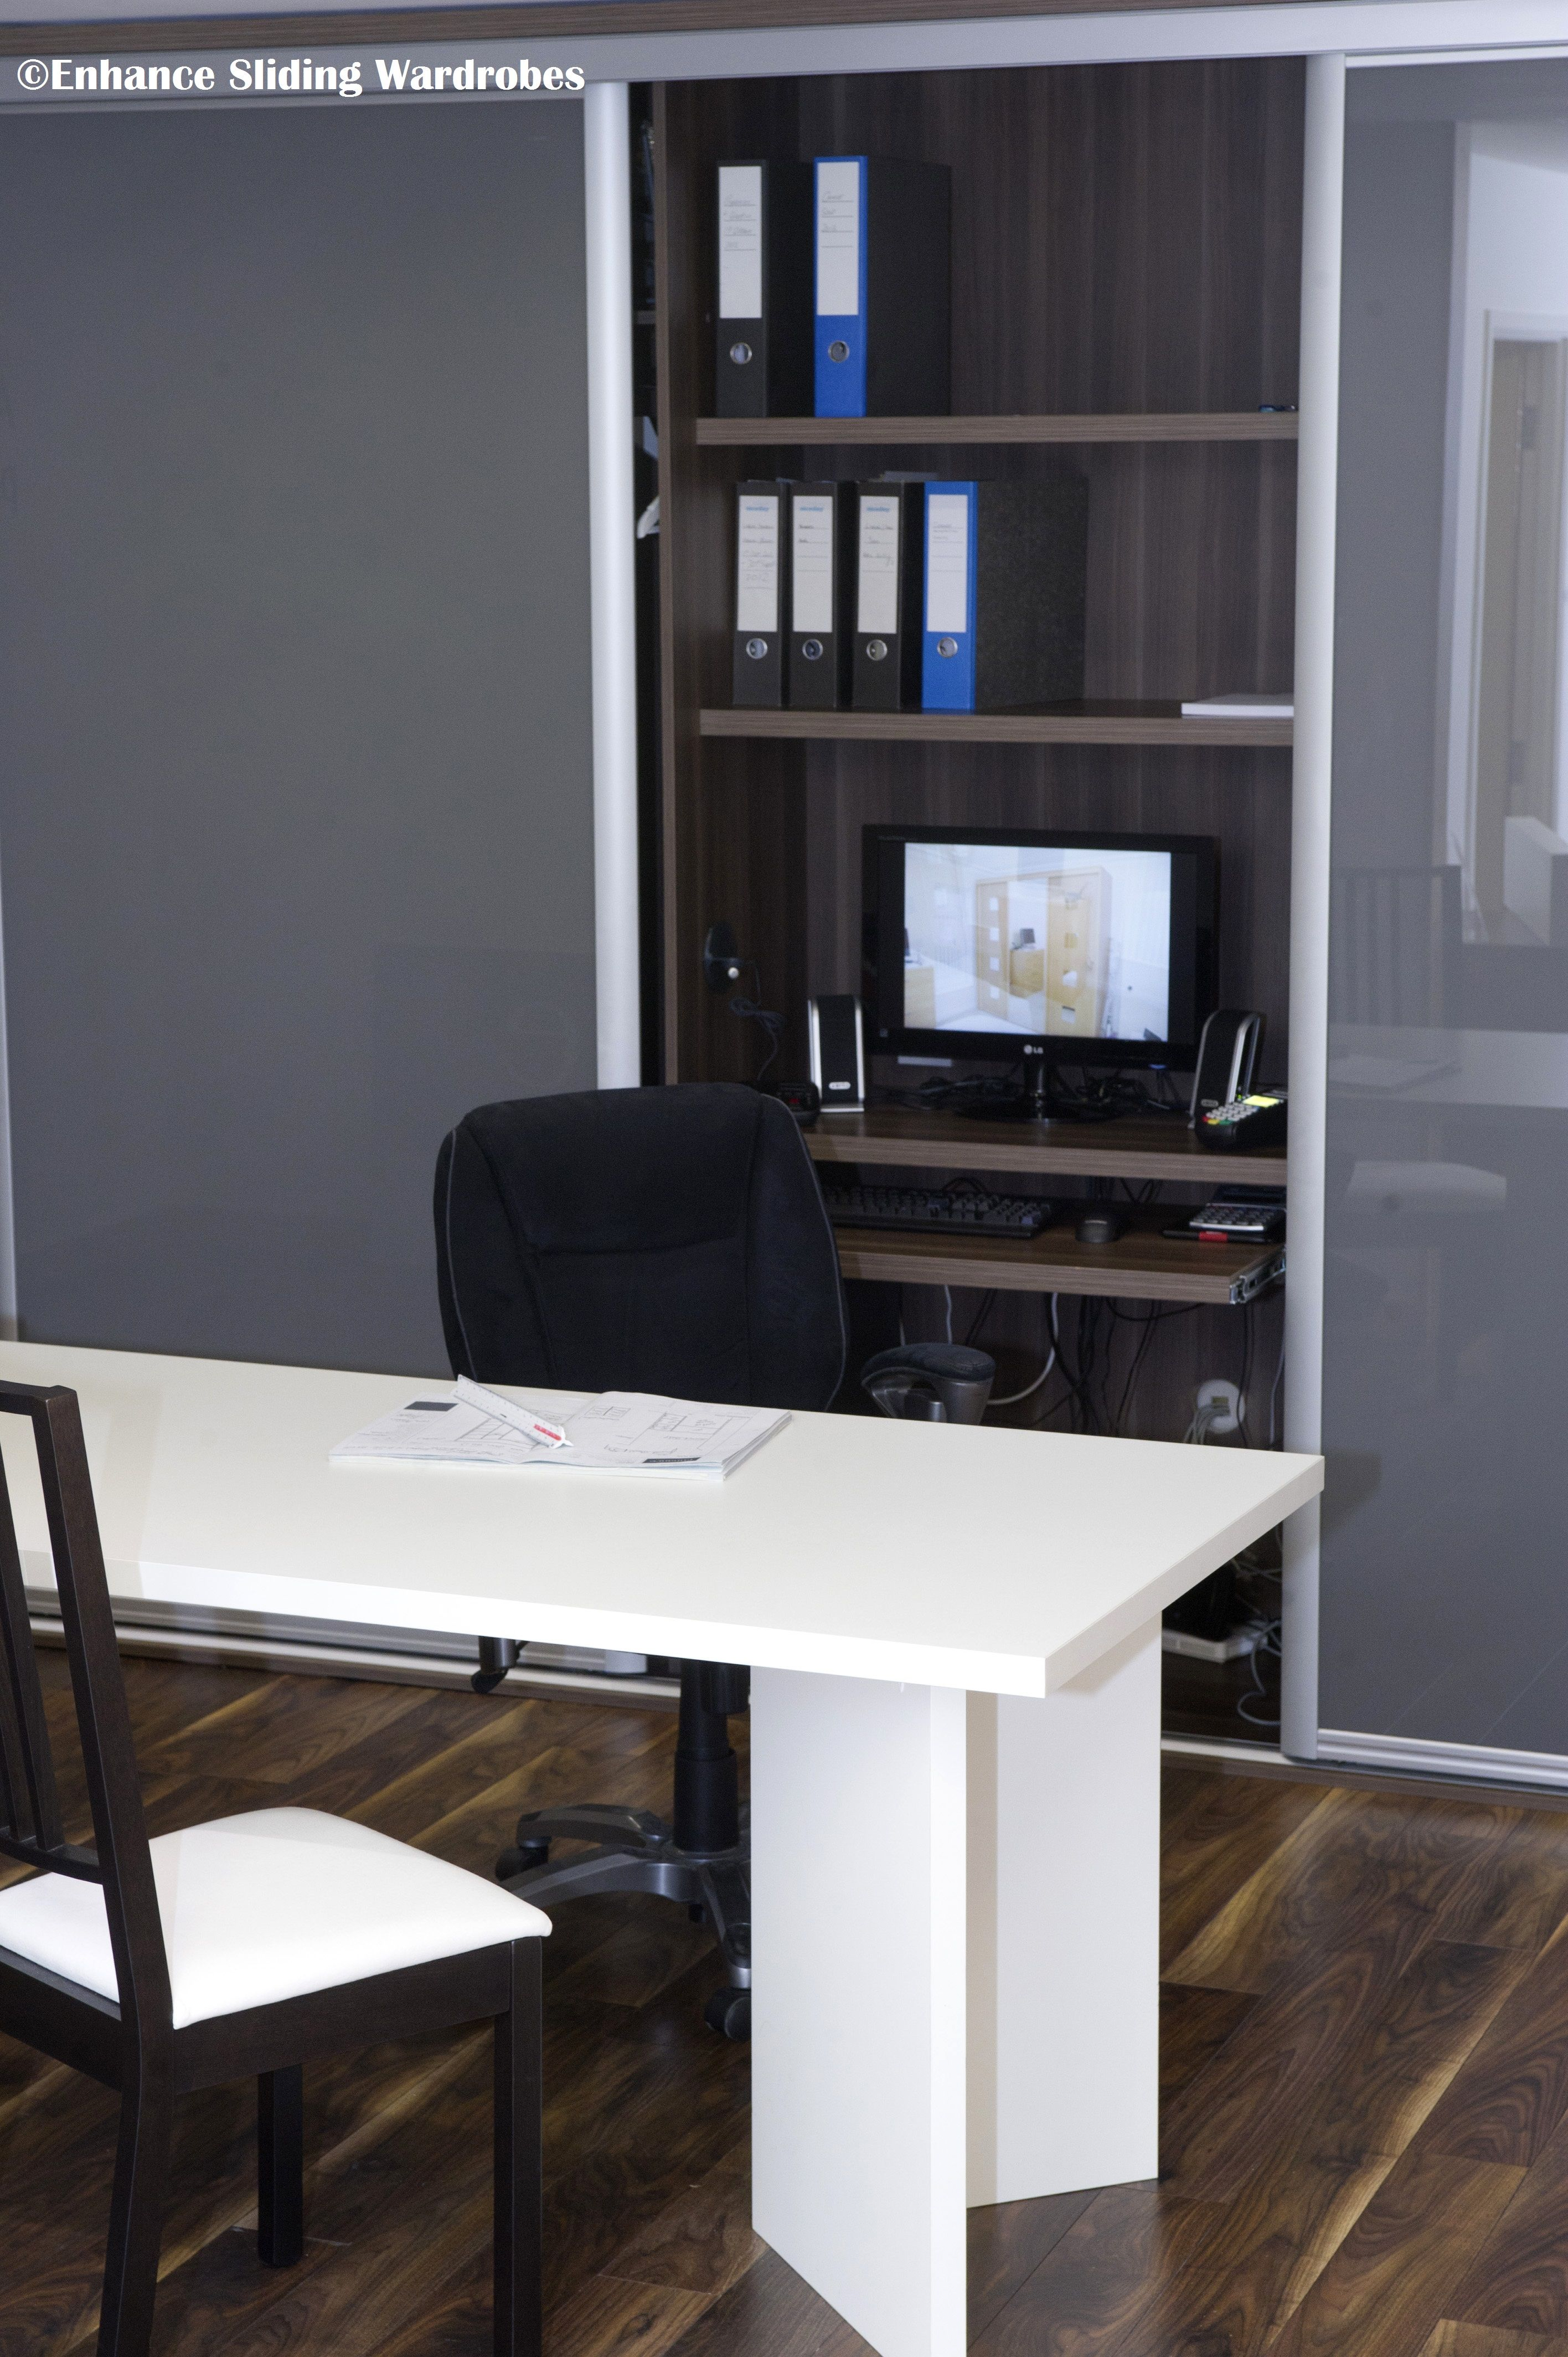 home office in a closet. Grey Glass Sliding Wardrobe #Home Office #Study // Designed By Enhance Wardrobes Home In A Closet